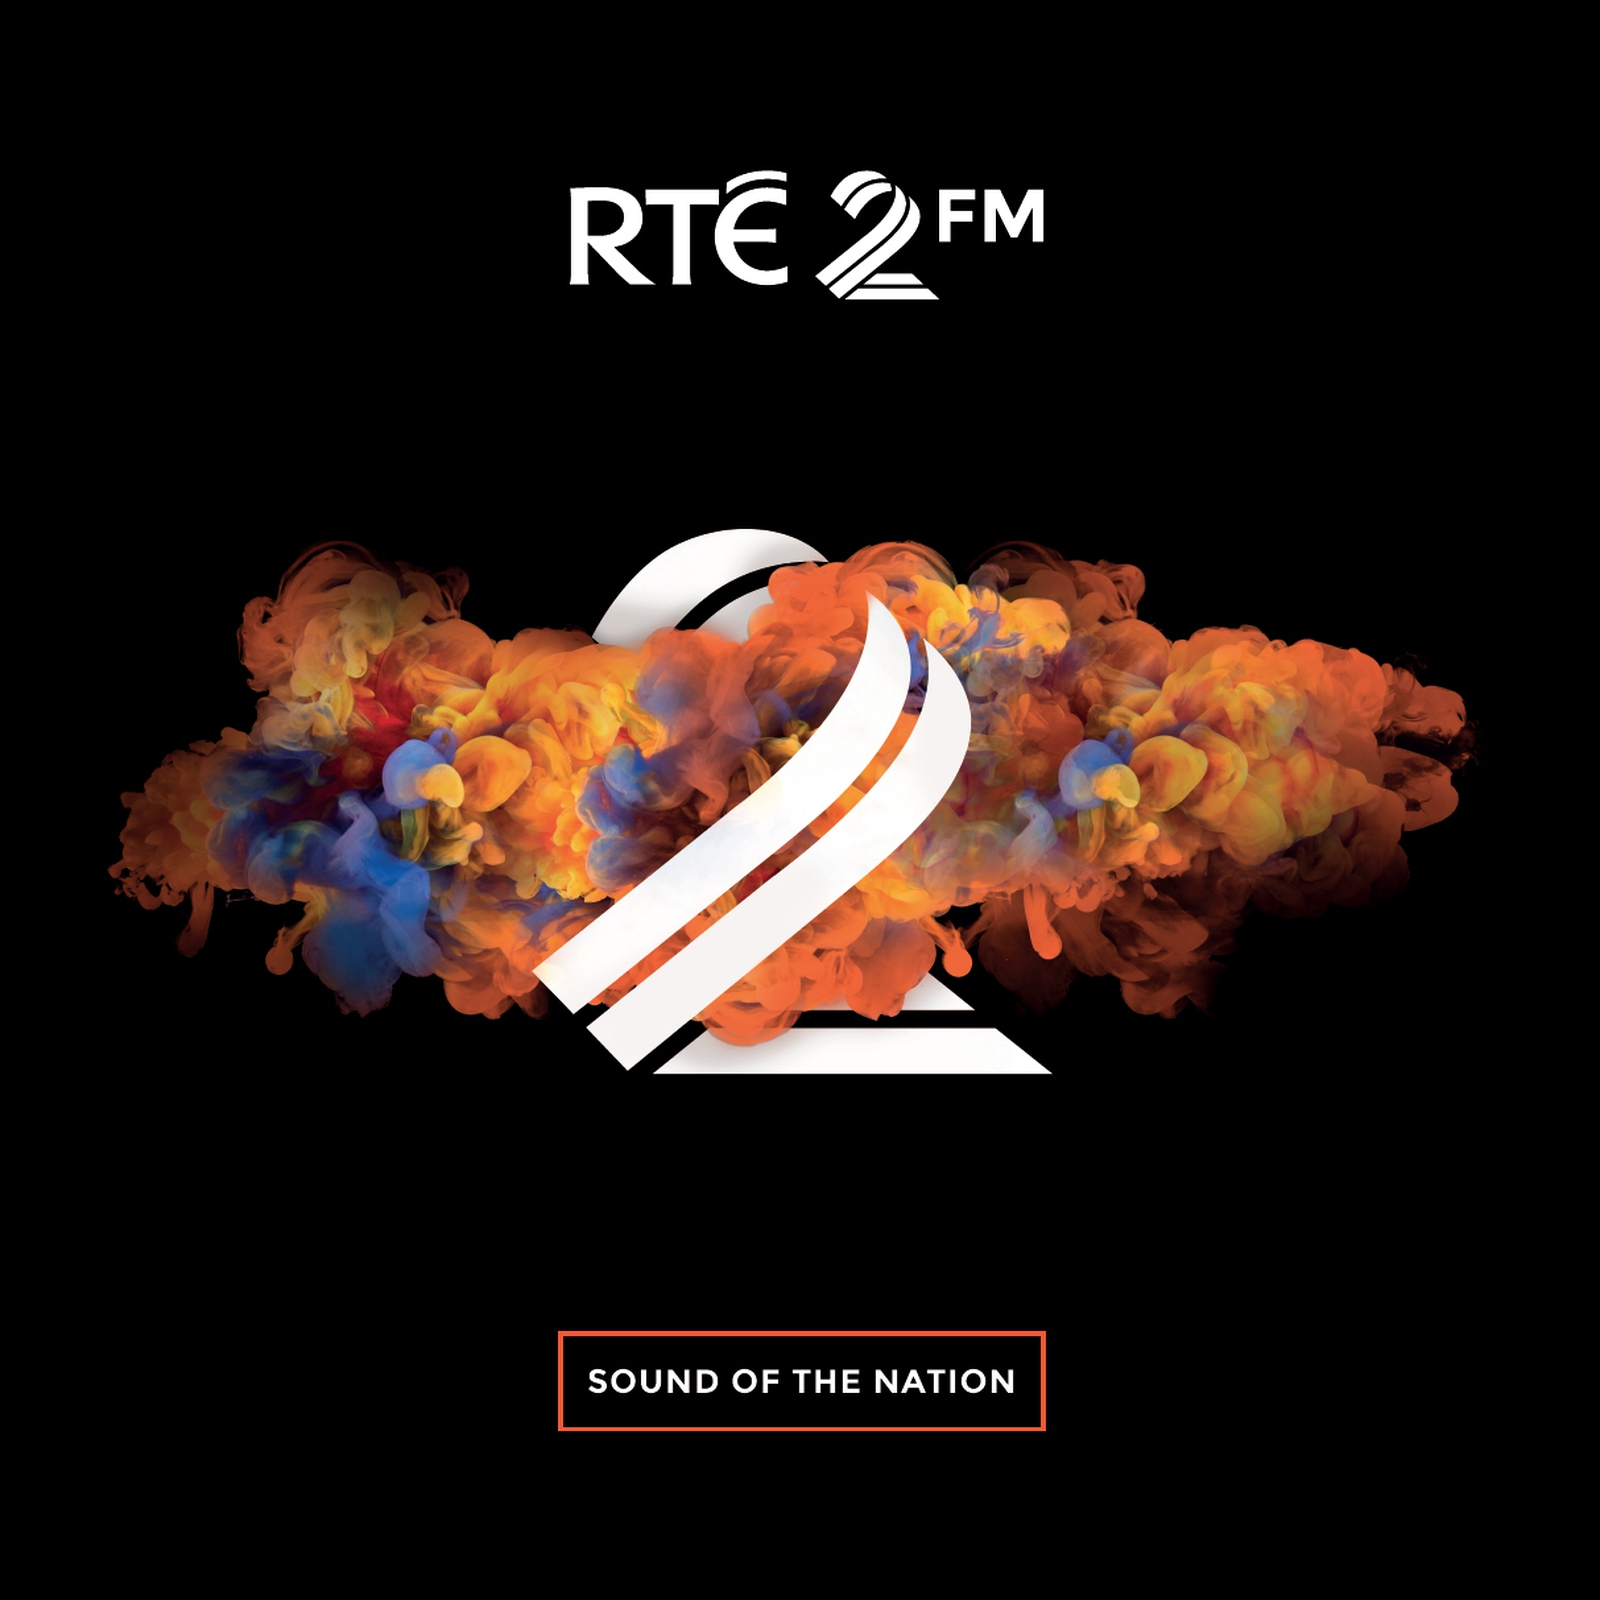 2FM Rising with SEAT - Irish music to watch in 2019